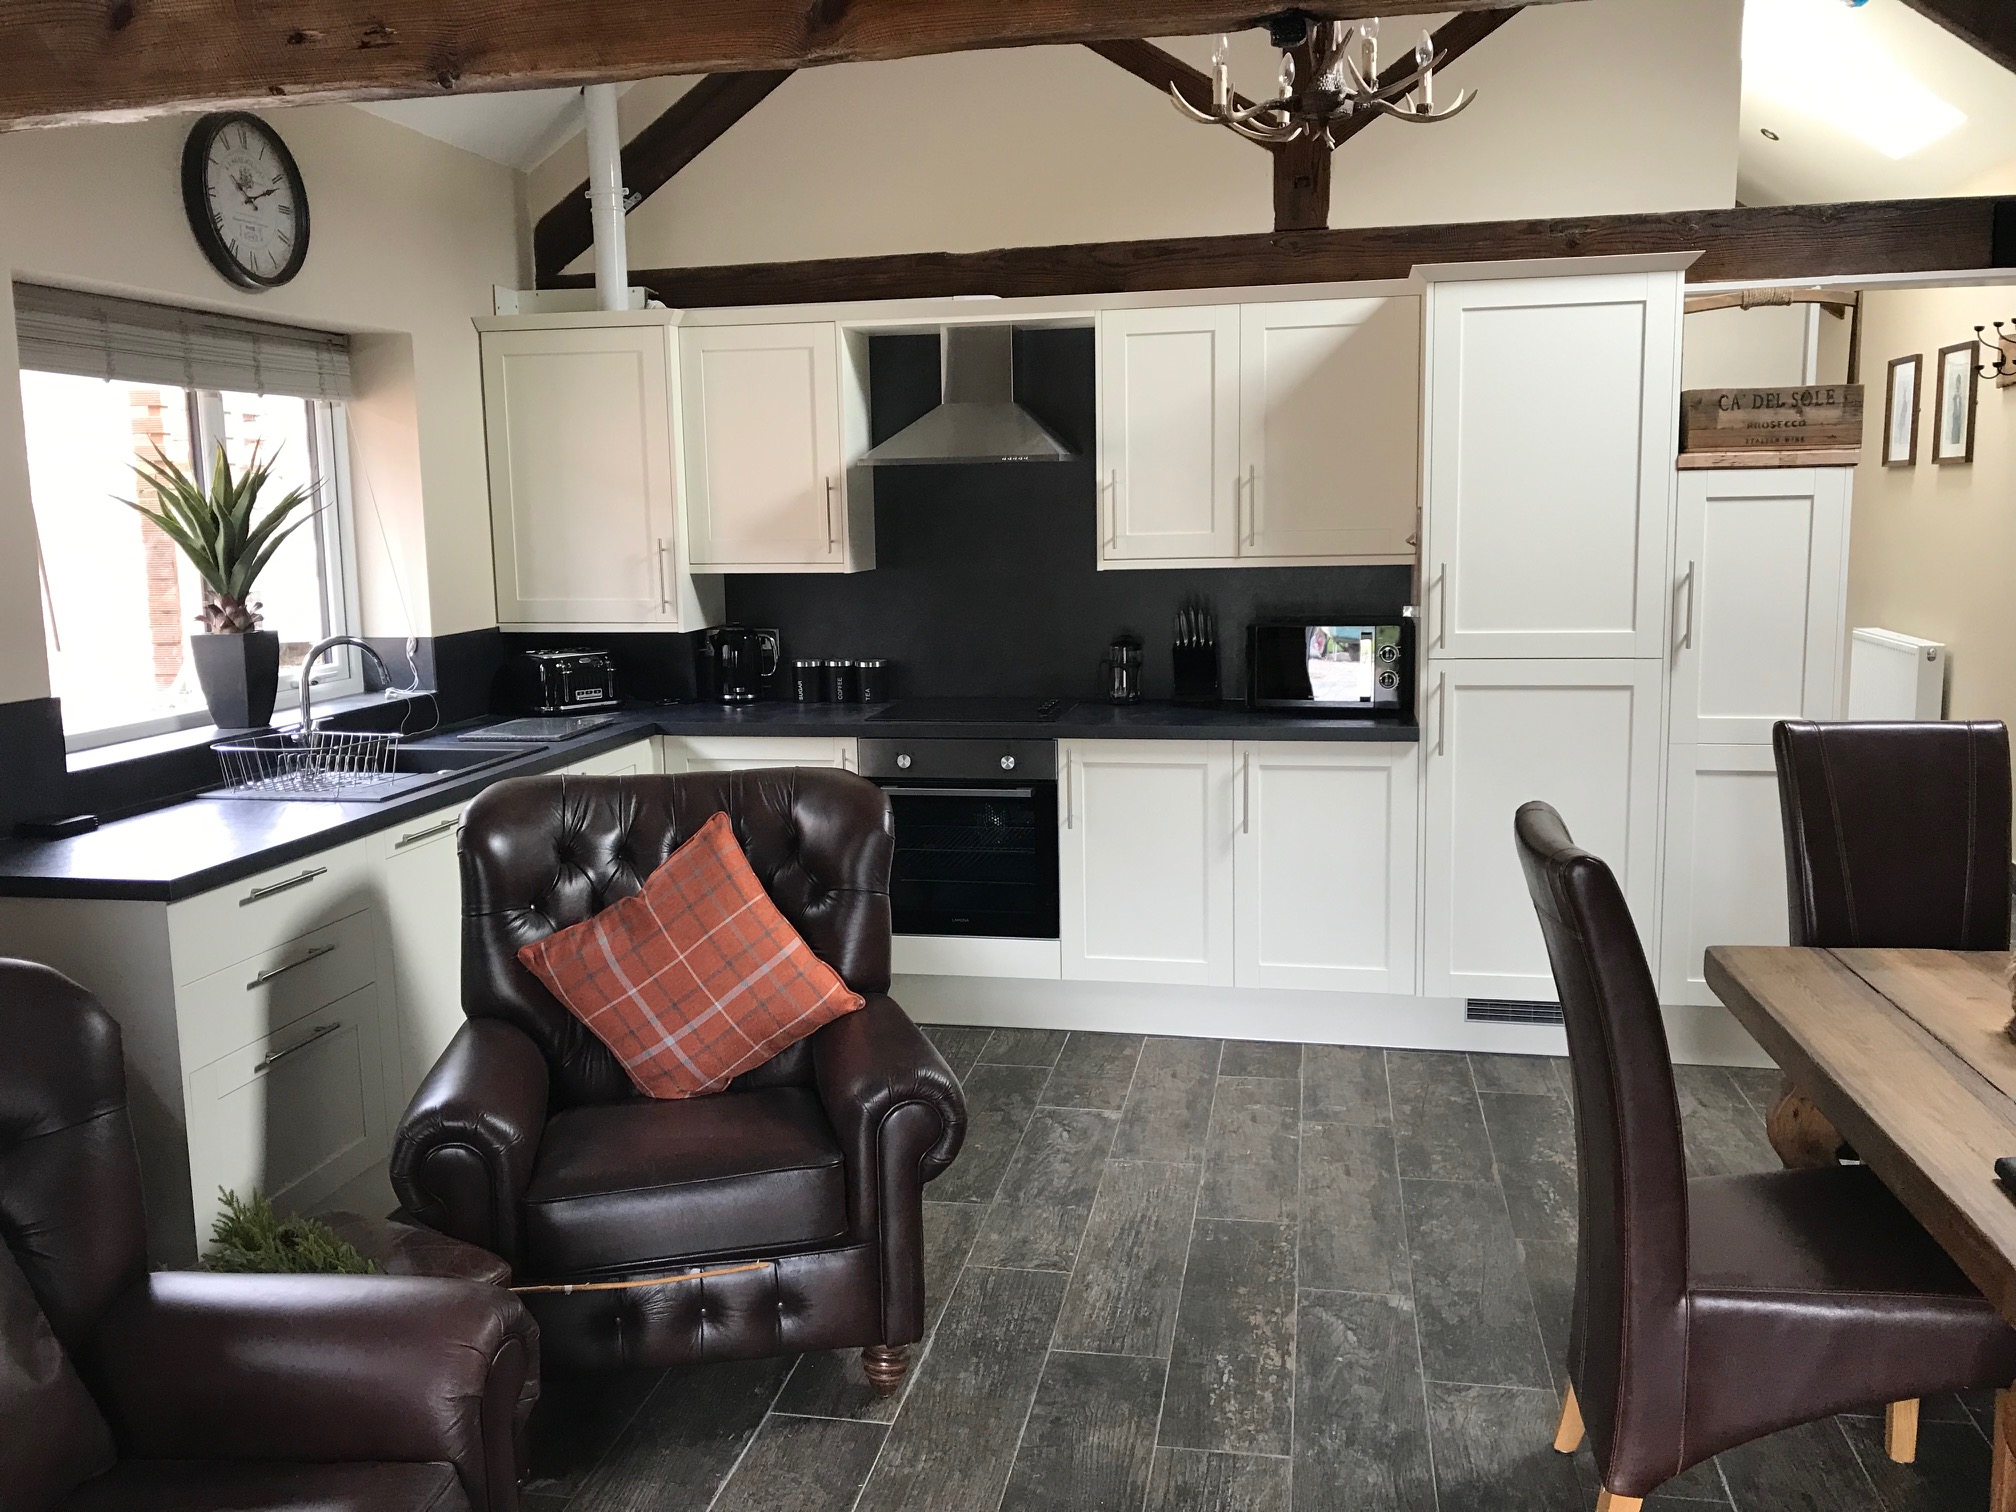 The Gamekeepers Cottage Kitchen